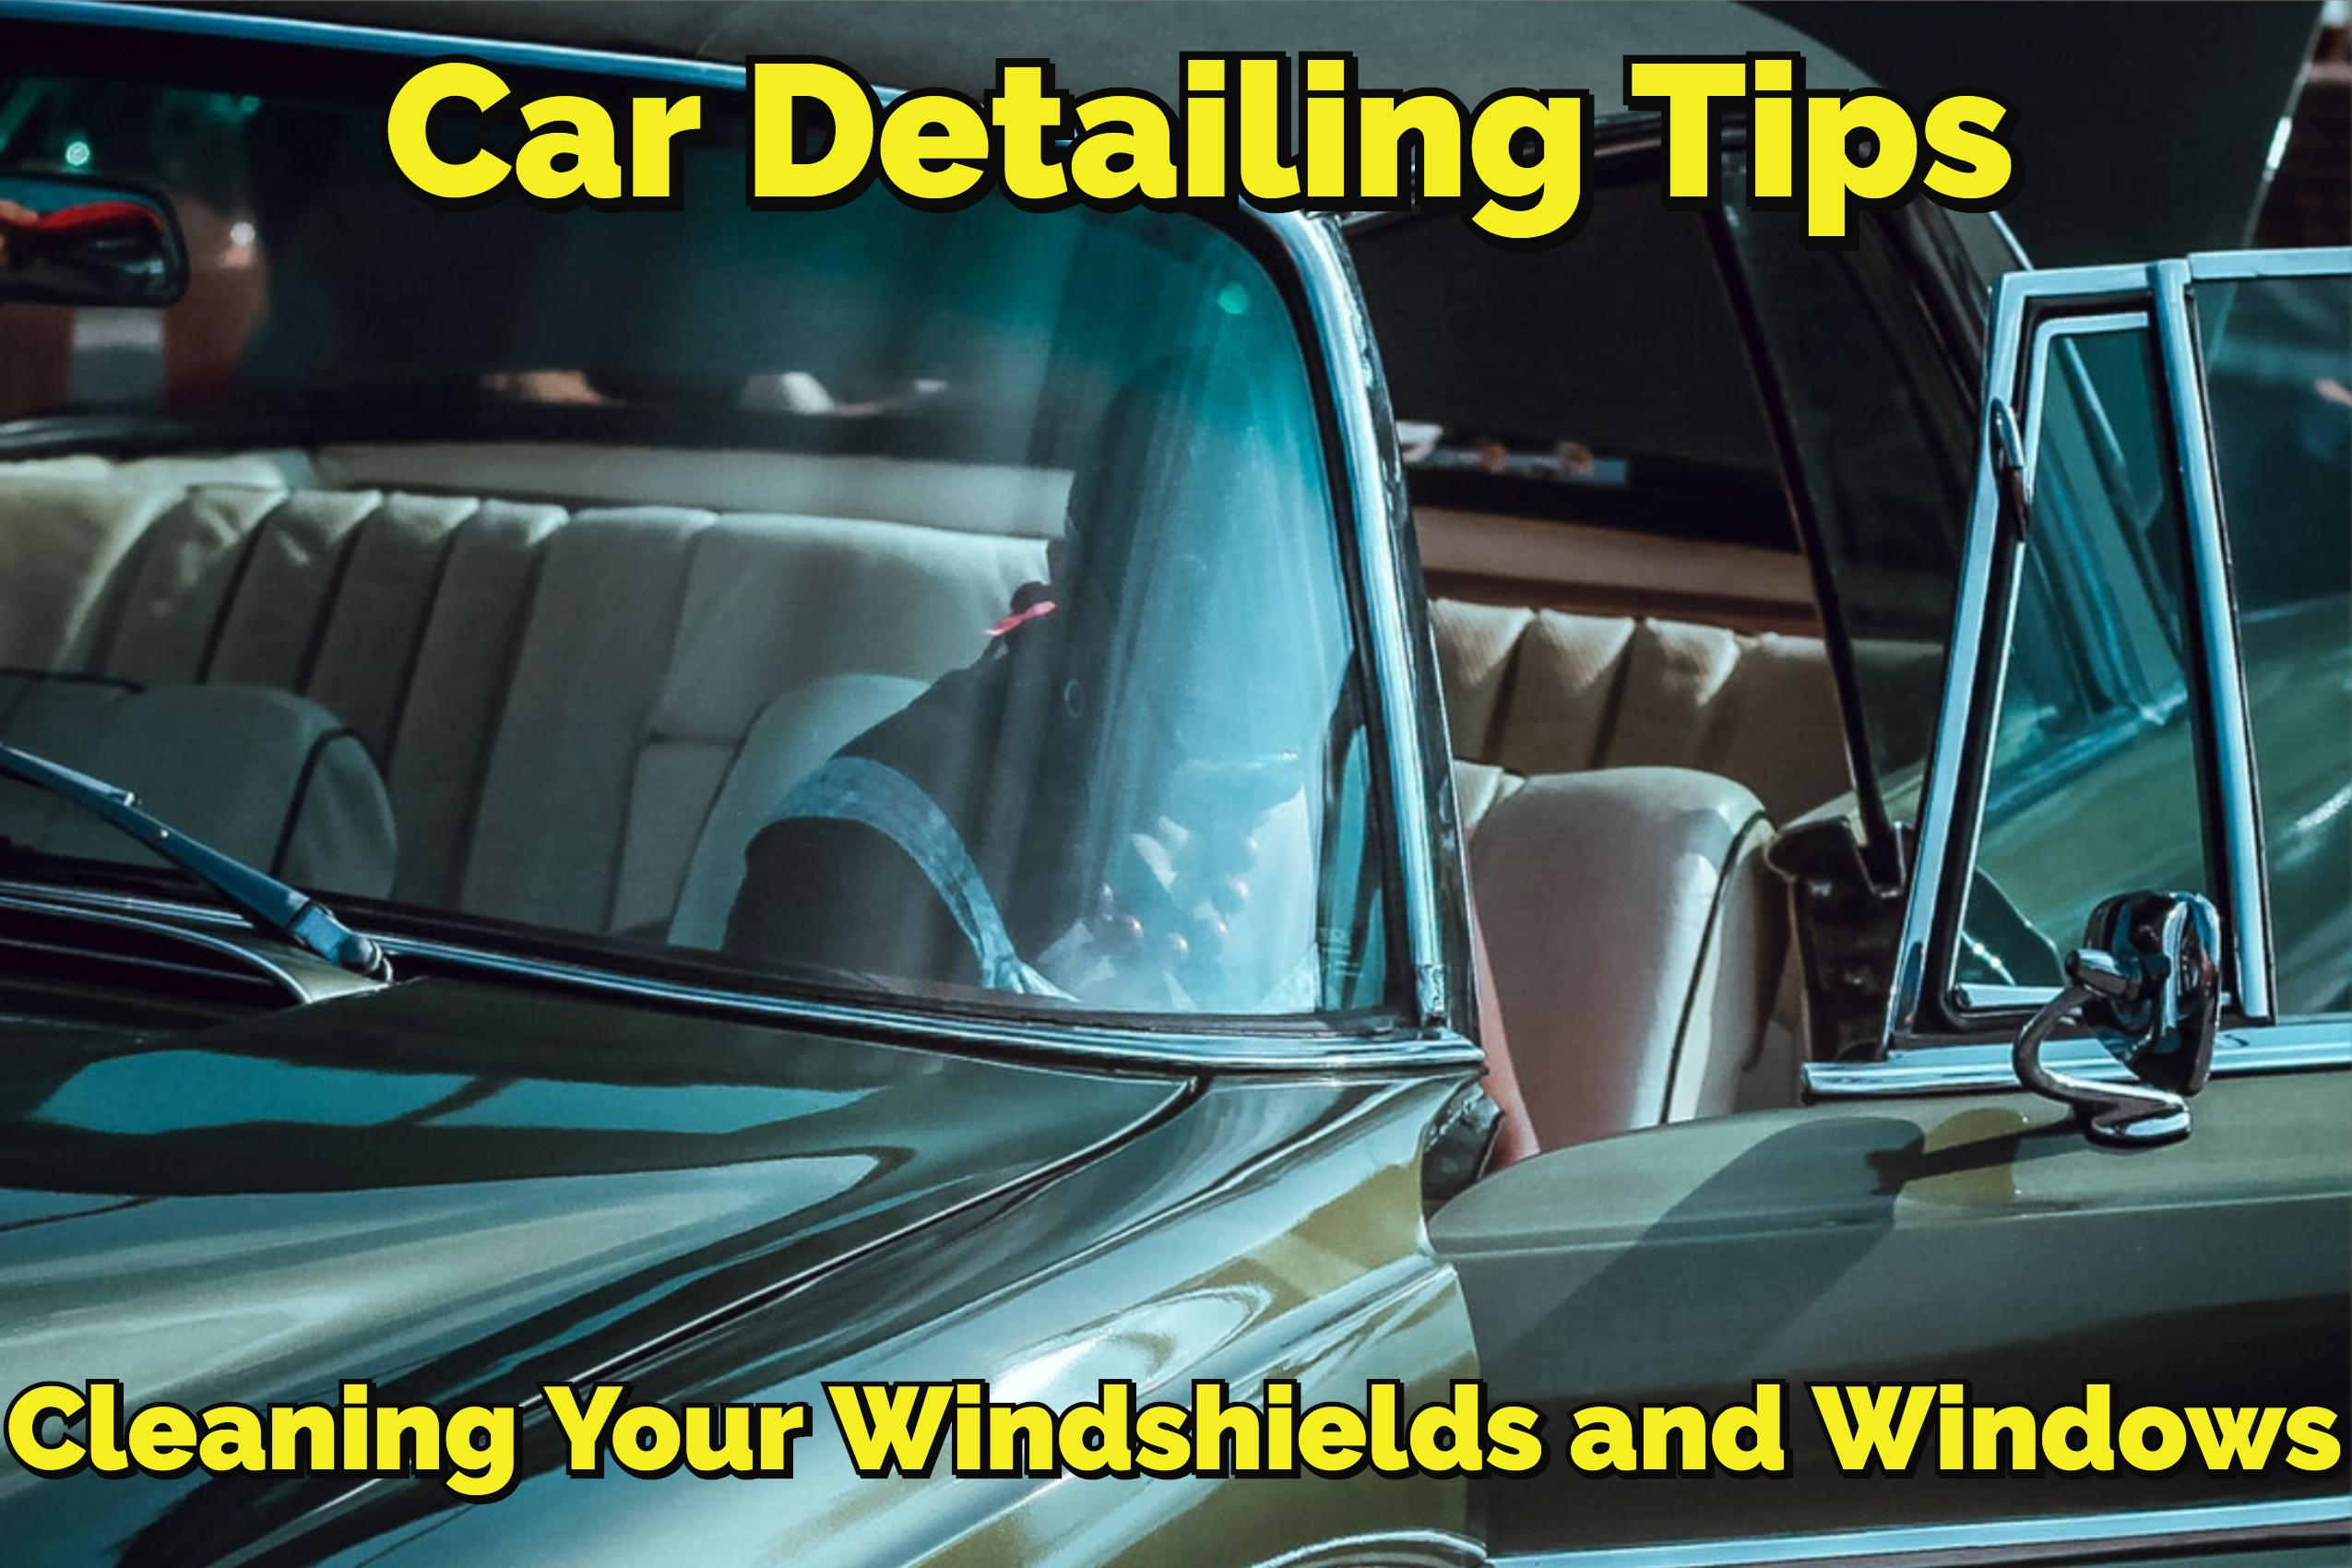 Car Detailing Tips: Cleaning Your Windshields and Windows without Scratching Them